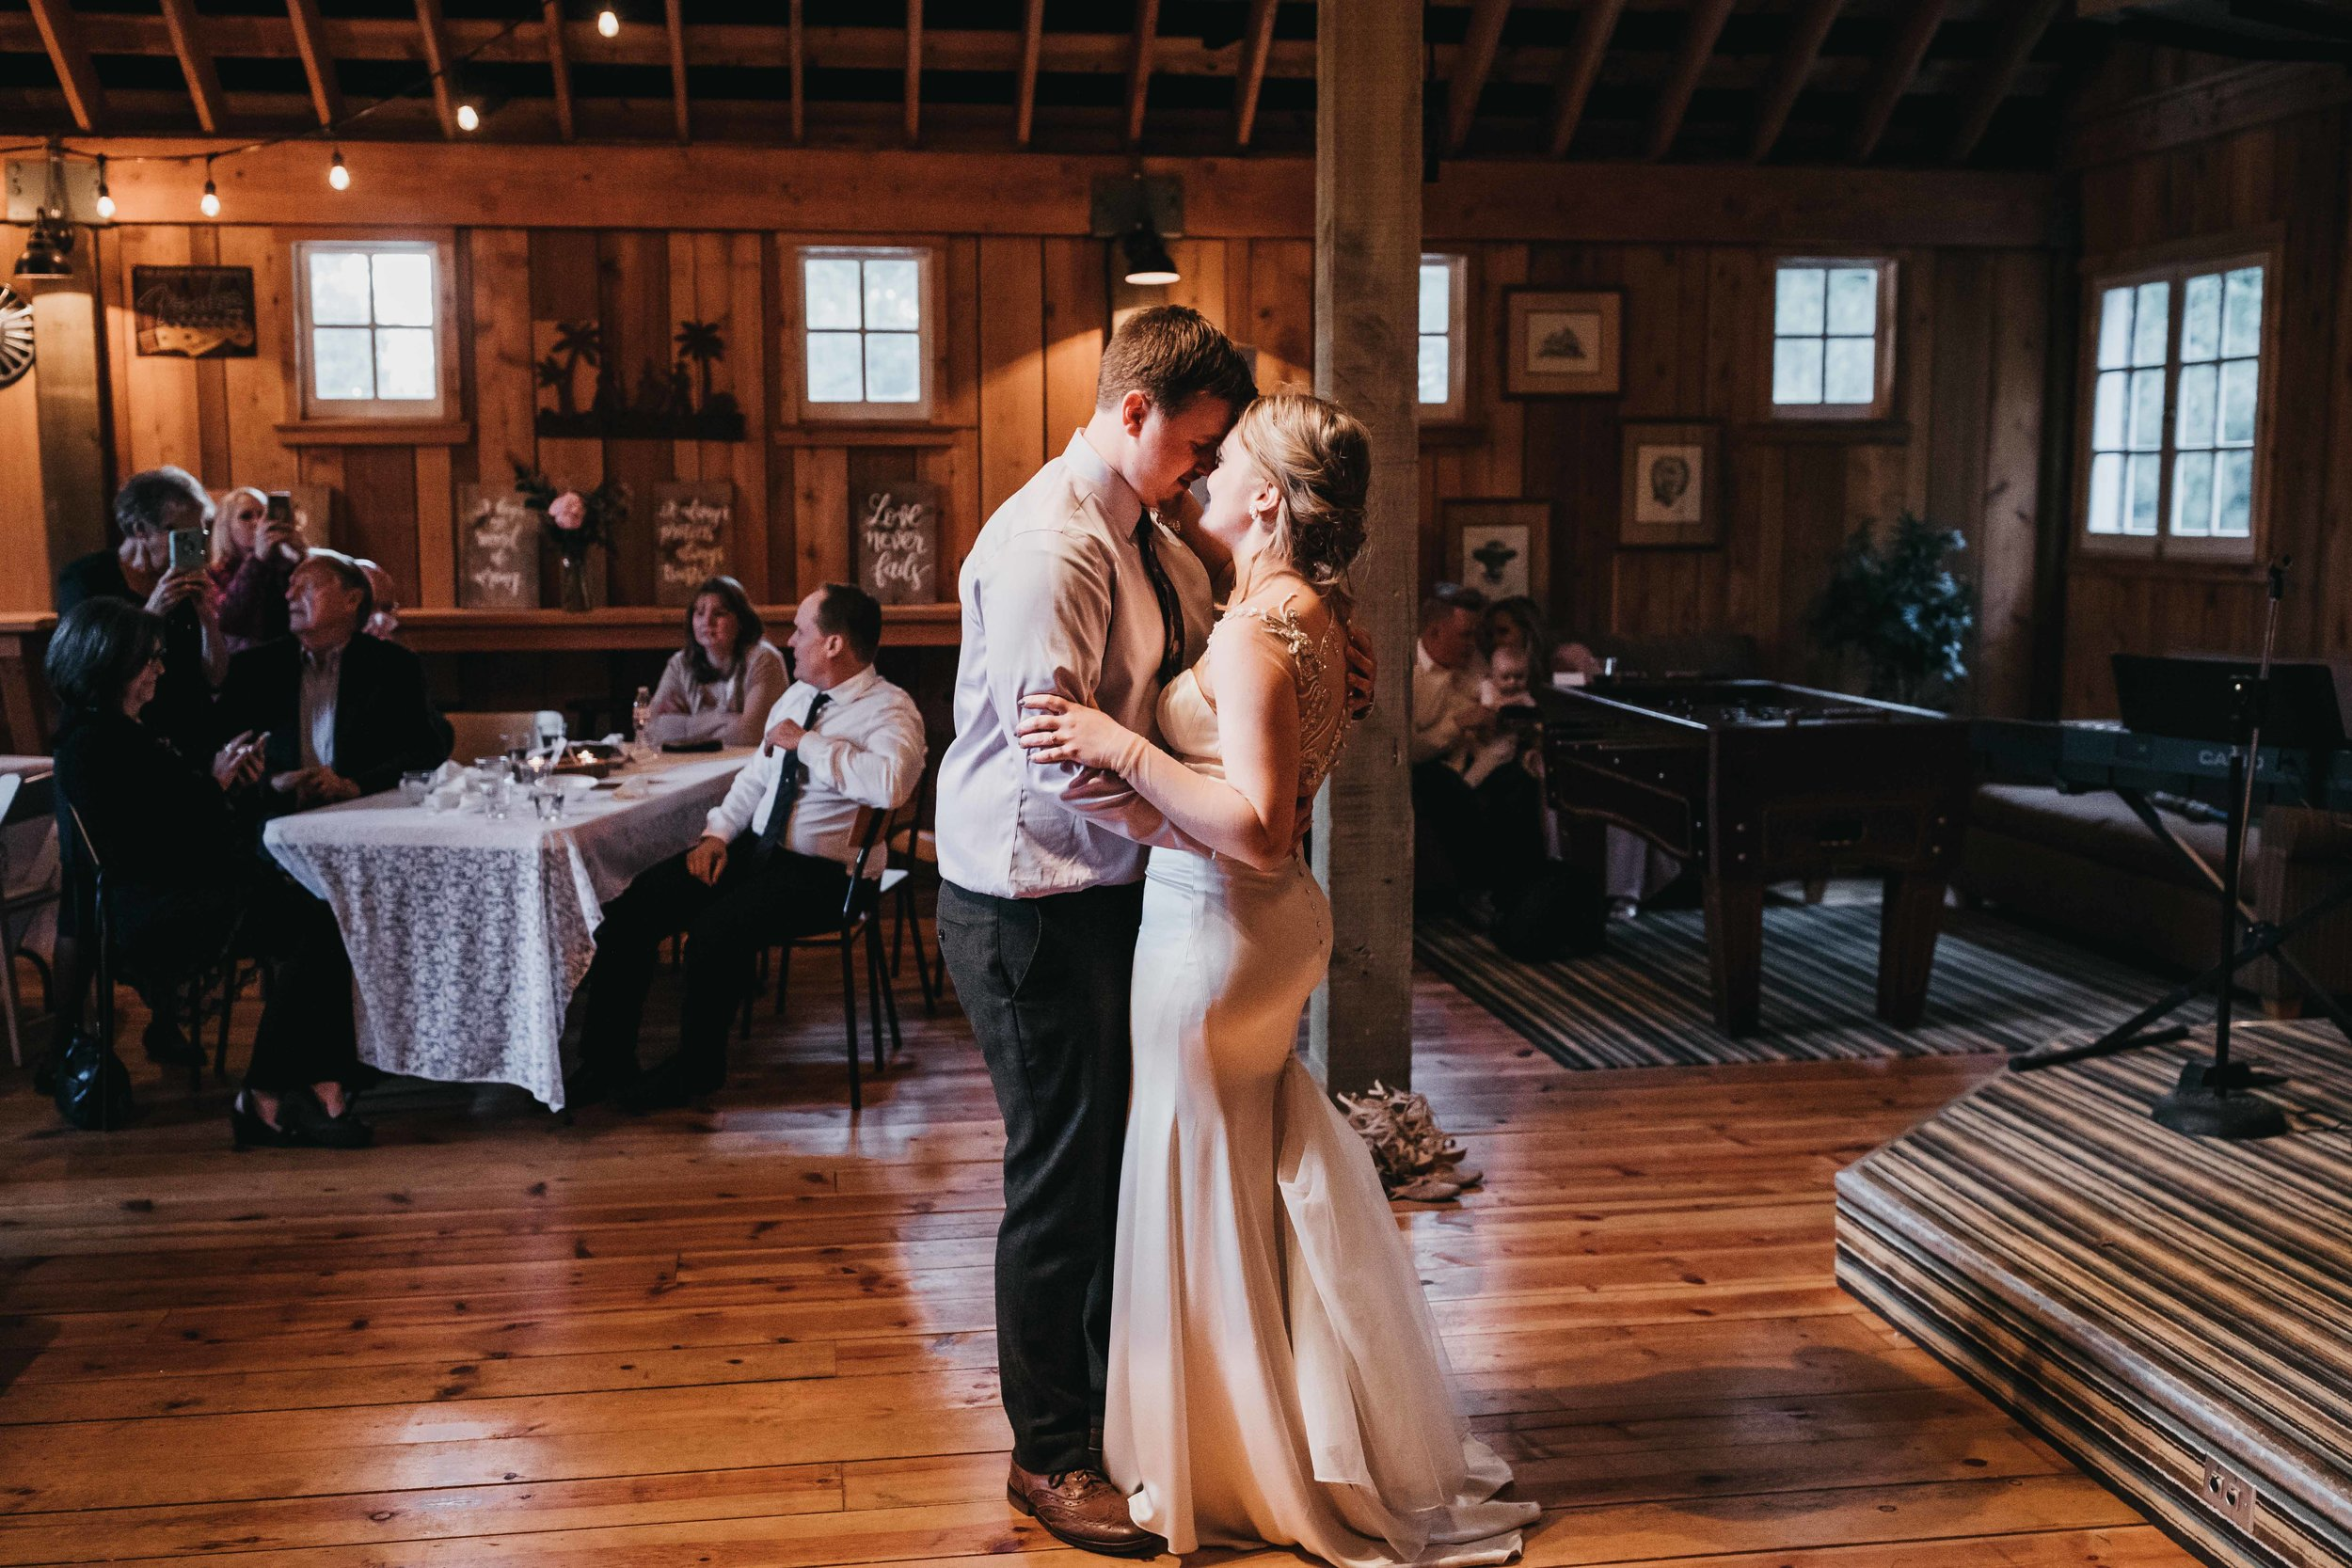 everson-barn-wedding-118.jpg